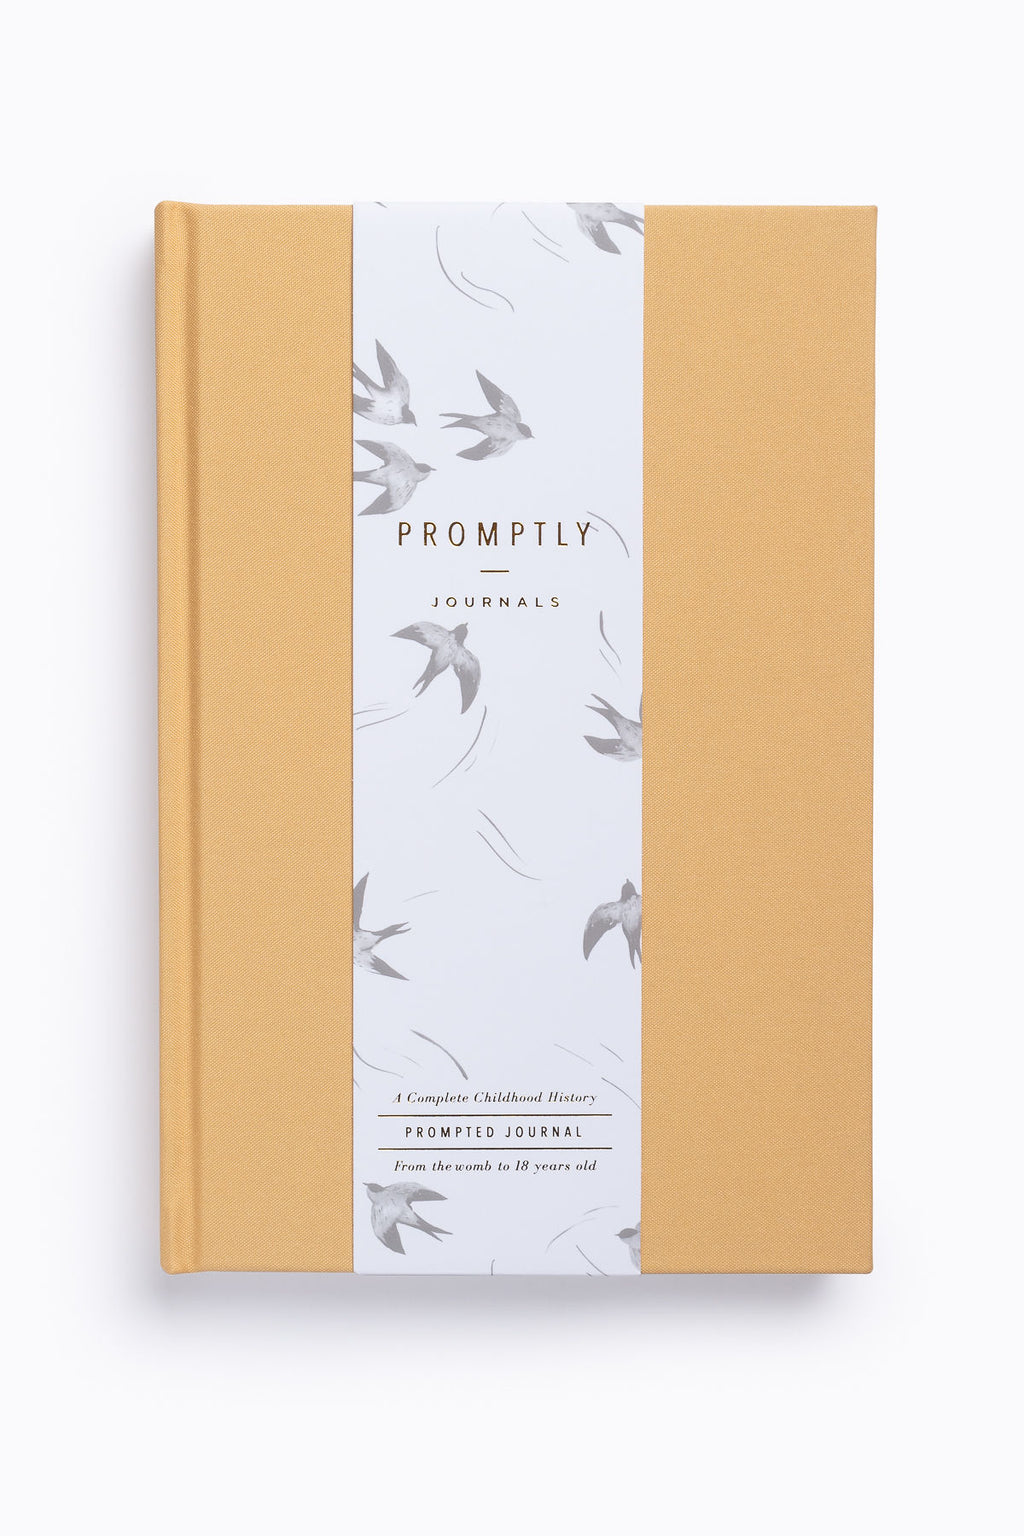 Promptly Journals: Childhood History in Ochre